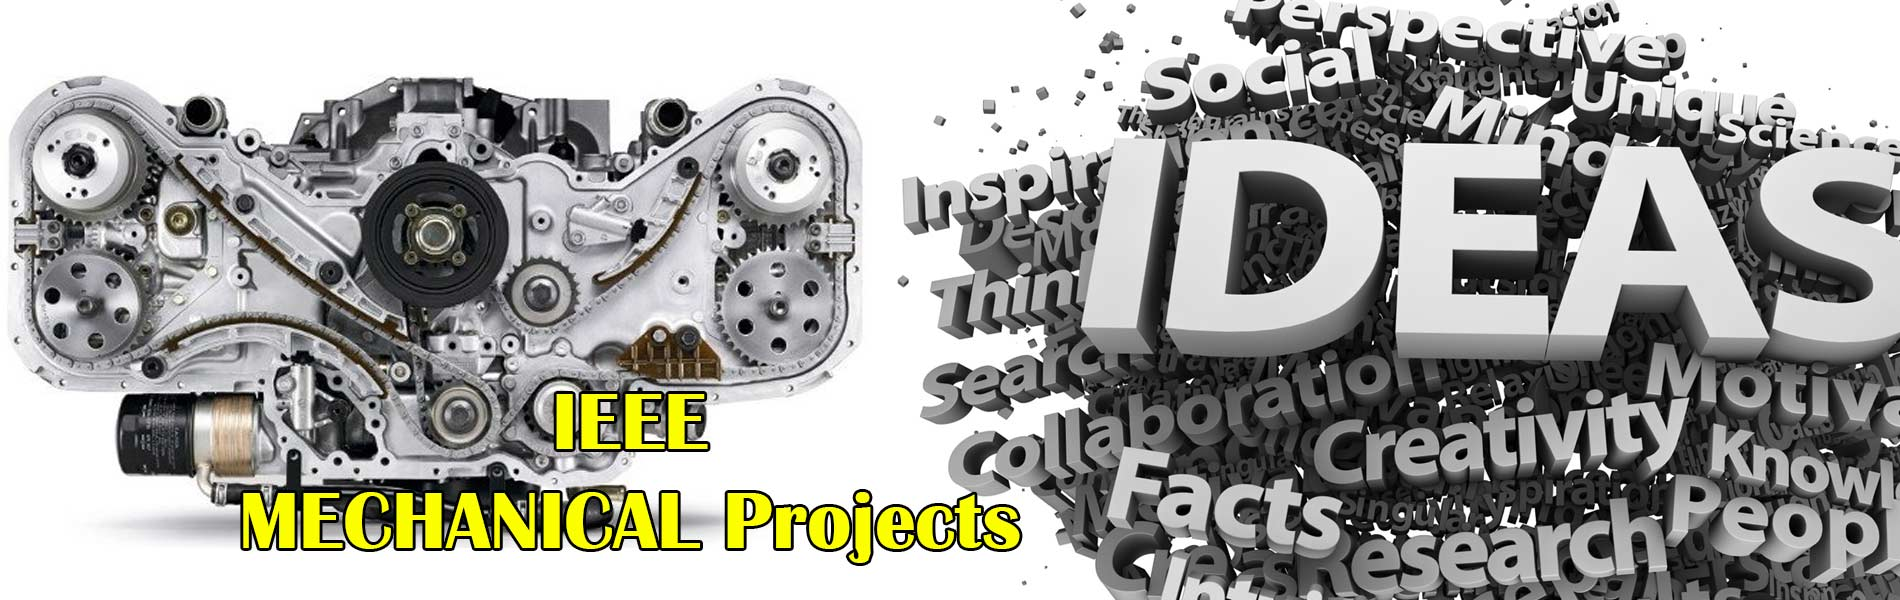 Mechanical Engineering Projects Final Year Electronics Mini Ides For Students With Project Ieee 2016 Titles